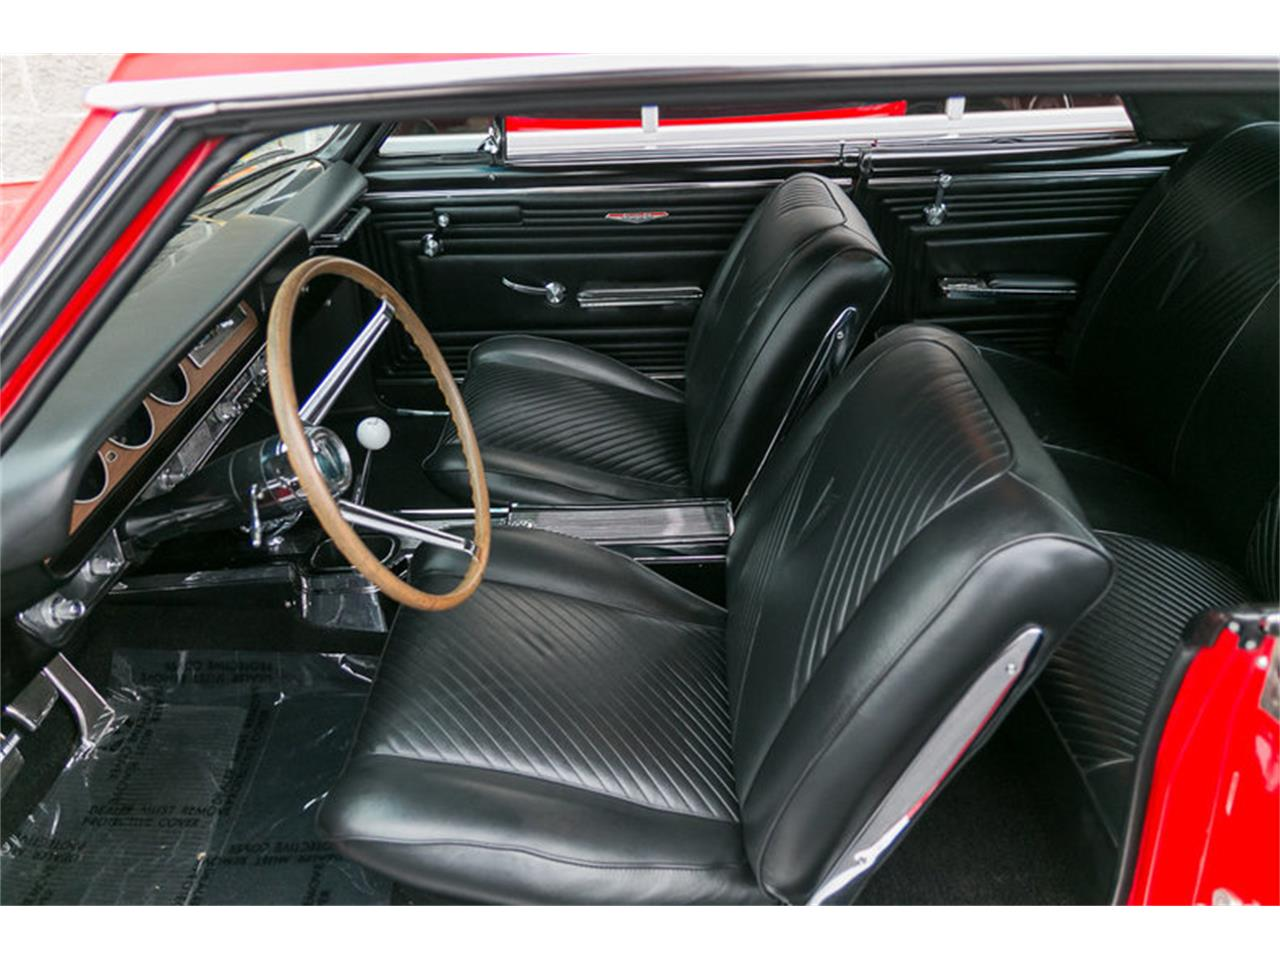 Large Picture of '65 Pontiac GTO located in Missouri - $54,995.00 - KPJA